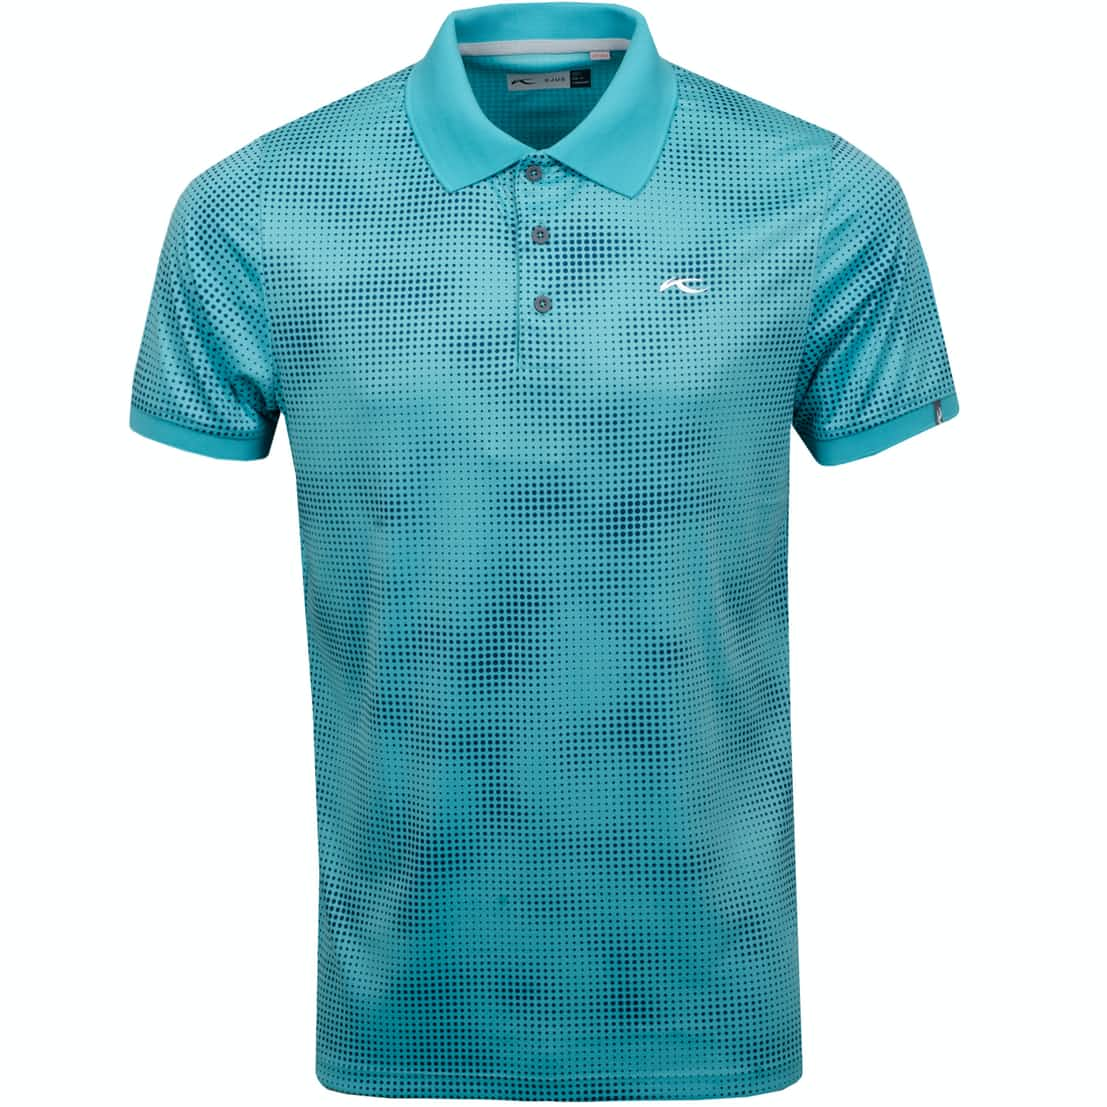 Spot Printed Polo Blue Turquoise - SS19